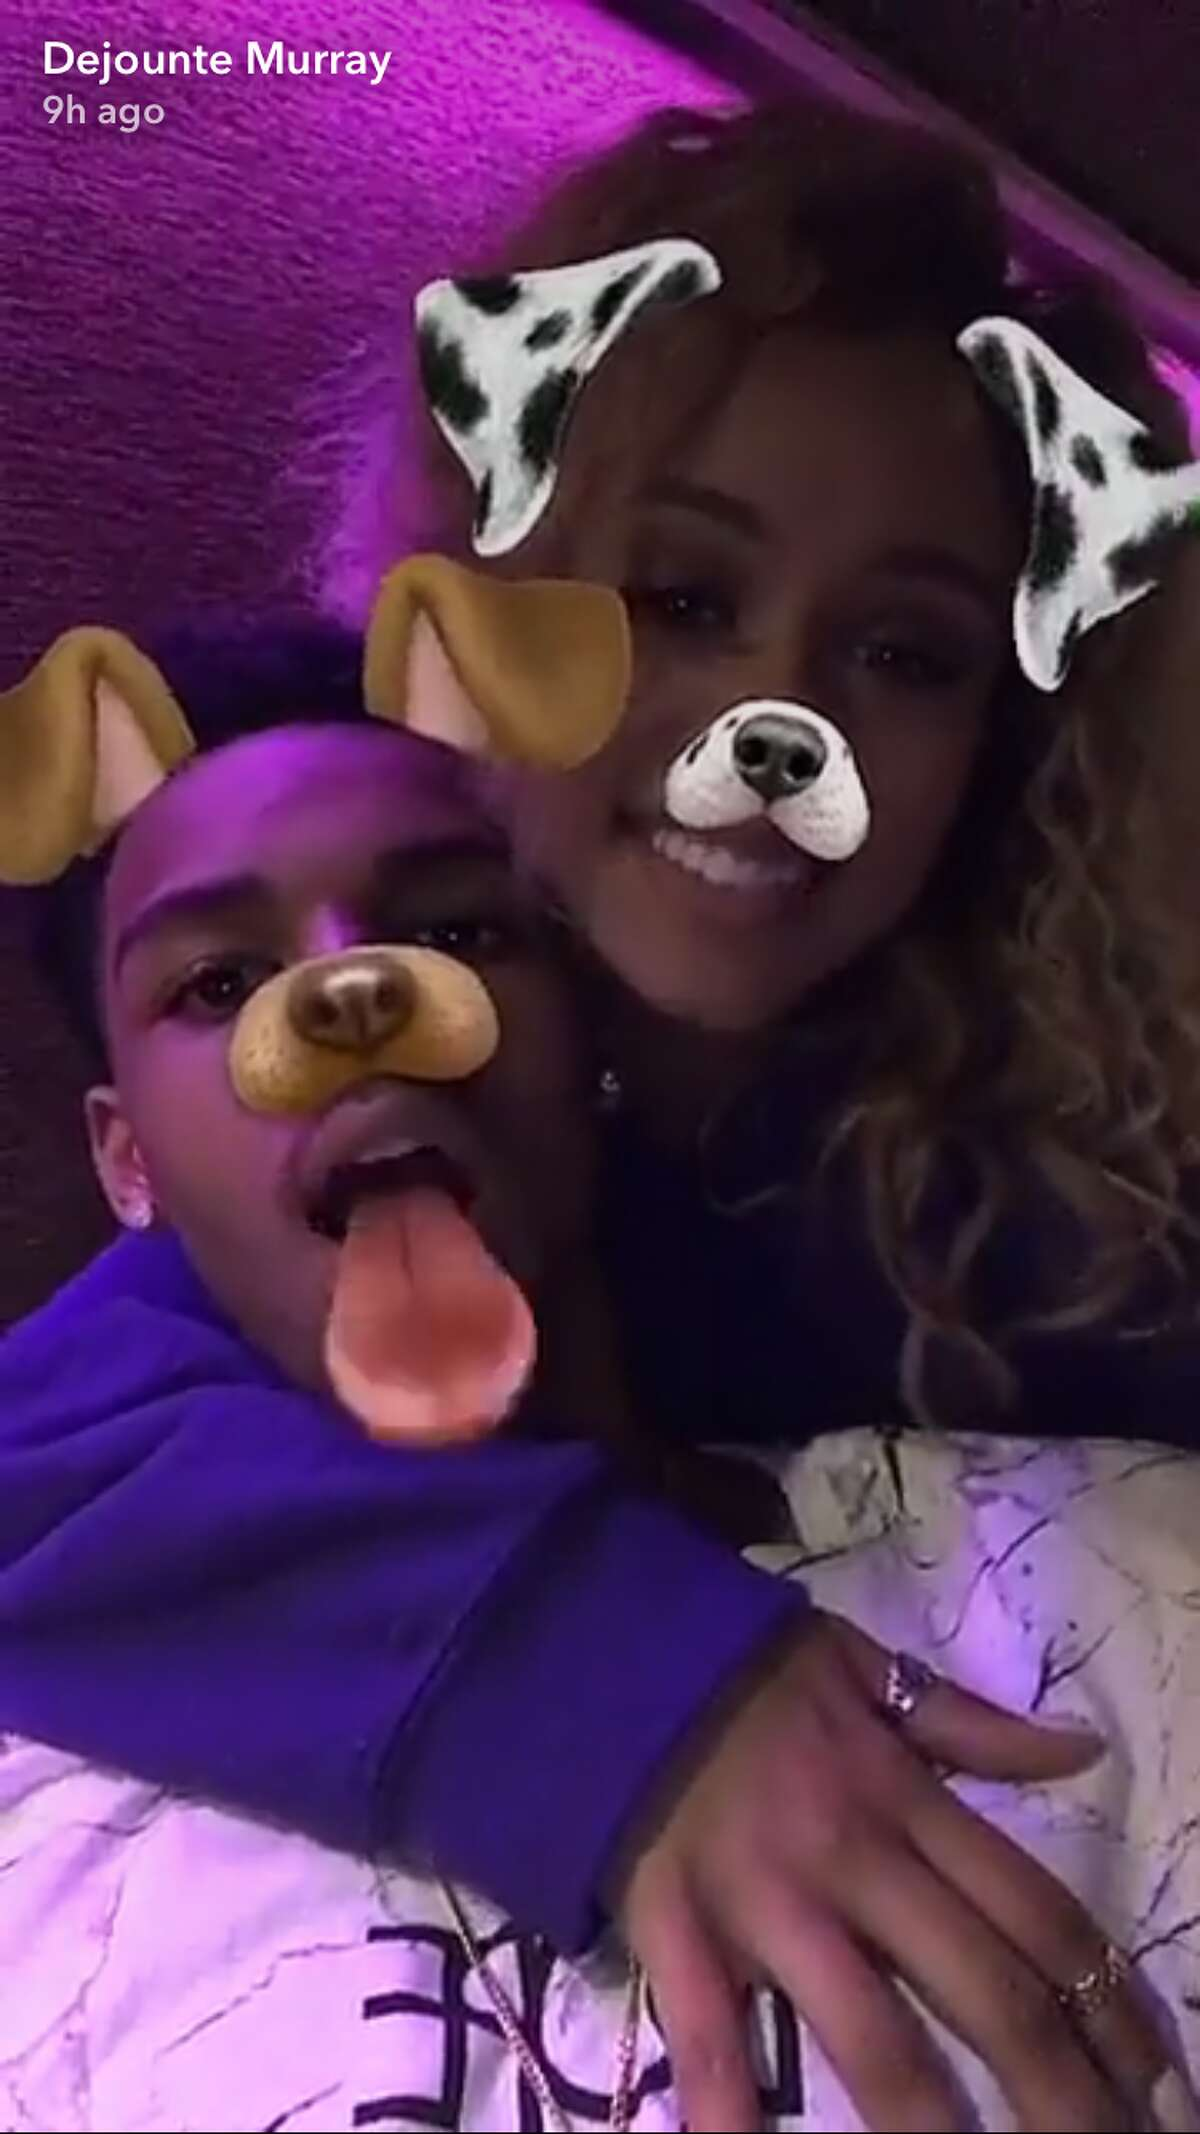 """Screenshots of Snapchat stories posted by Dejounte Murray to his """"story,"""" on May 30, 2017."""